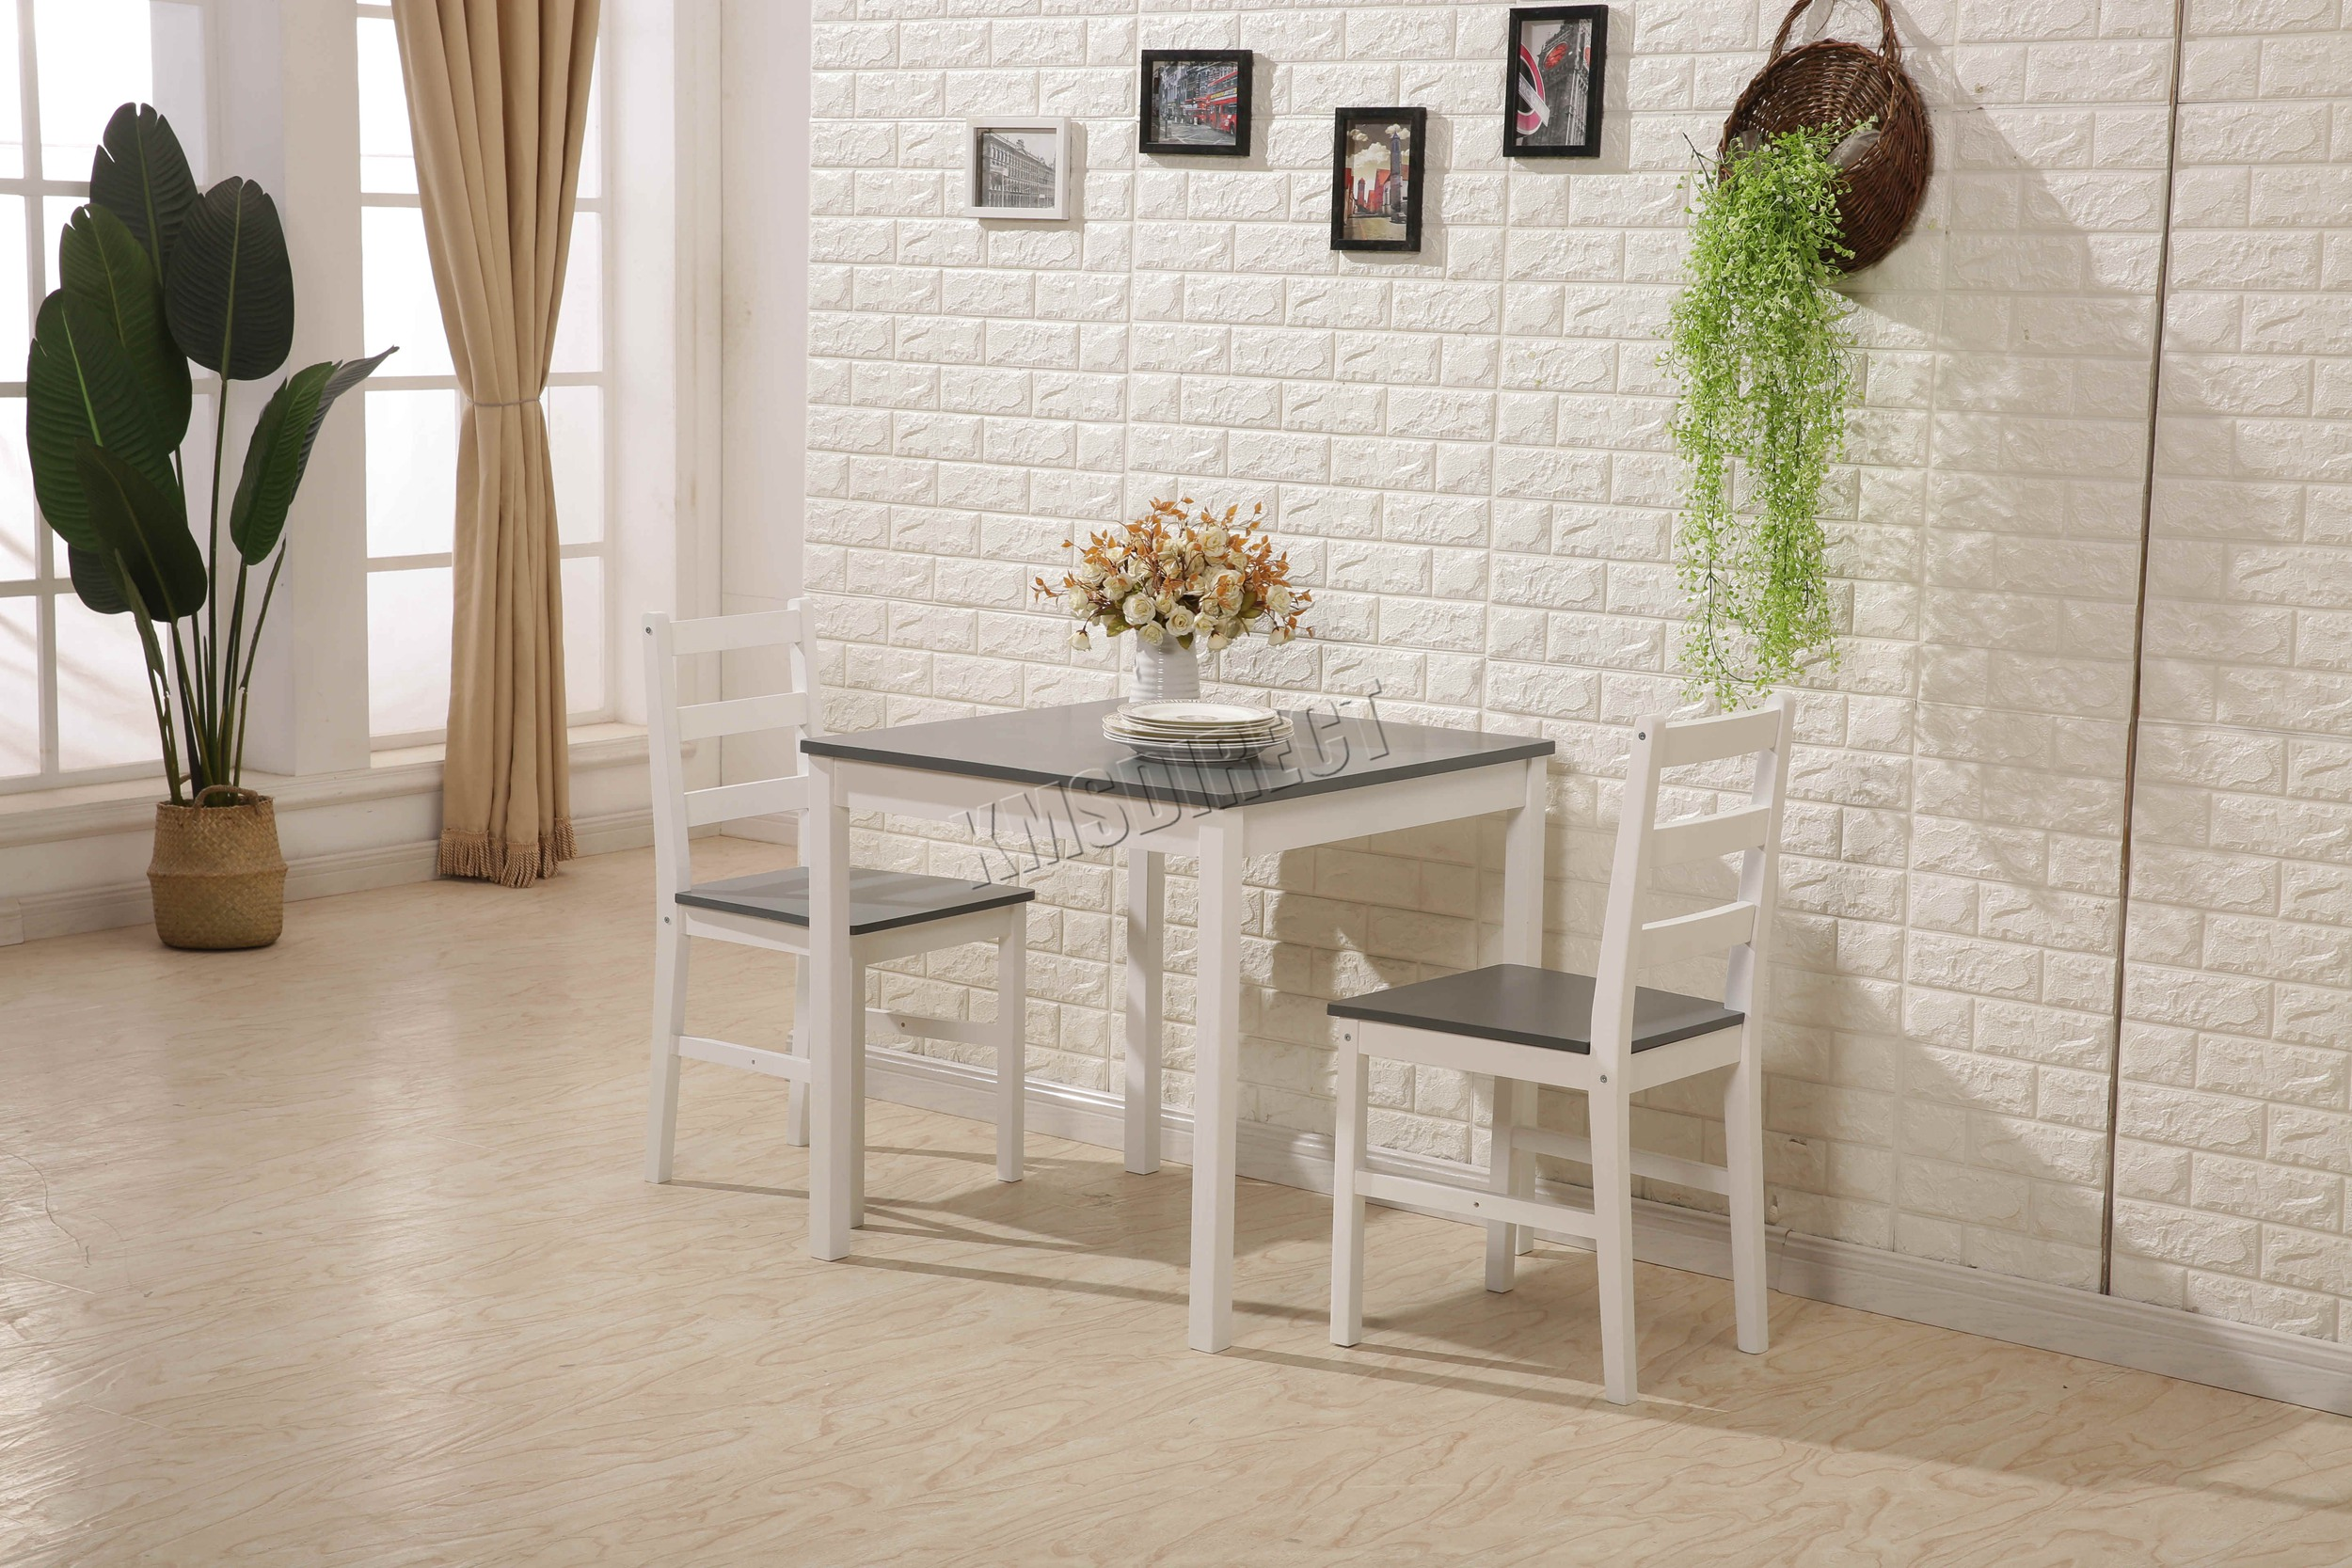 Tavolo Con Sedie Cucina.Cosmetic Damaged Westwood Pine Wood Dining Table With 2 Chairs